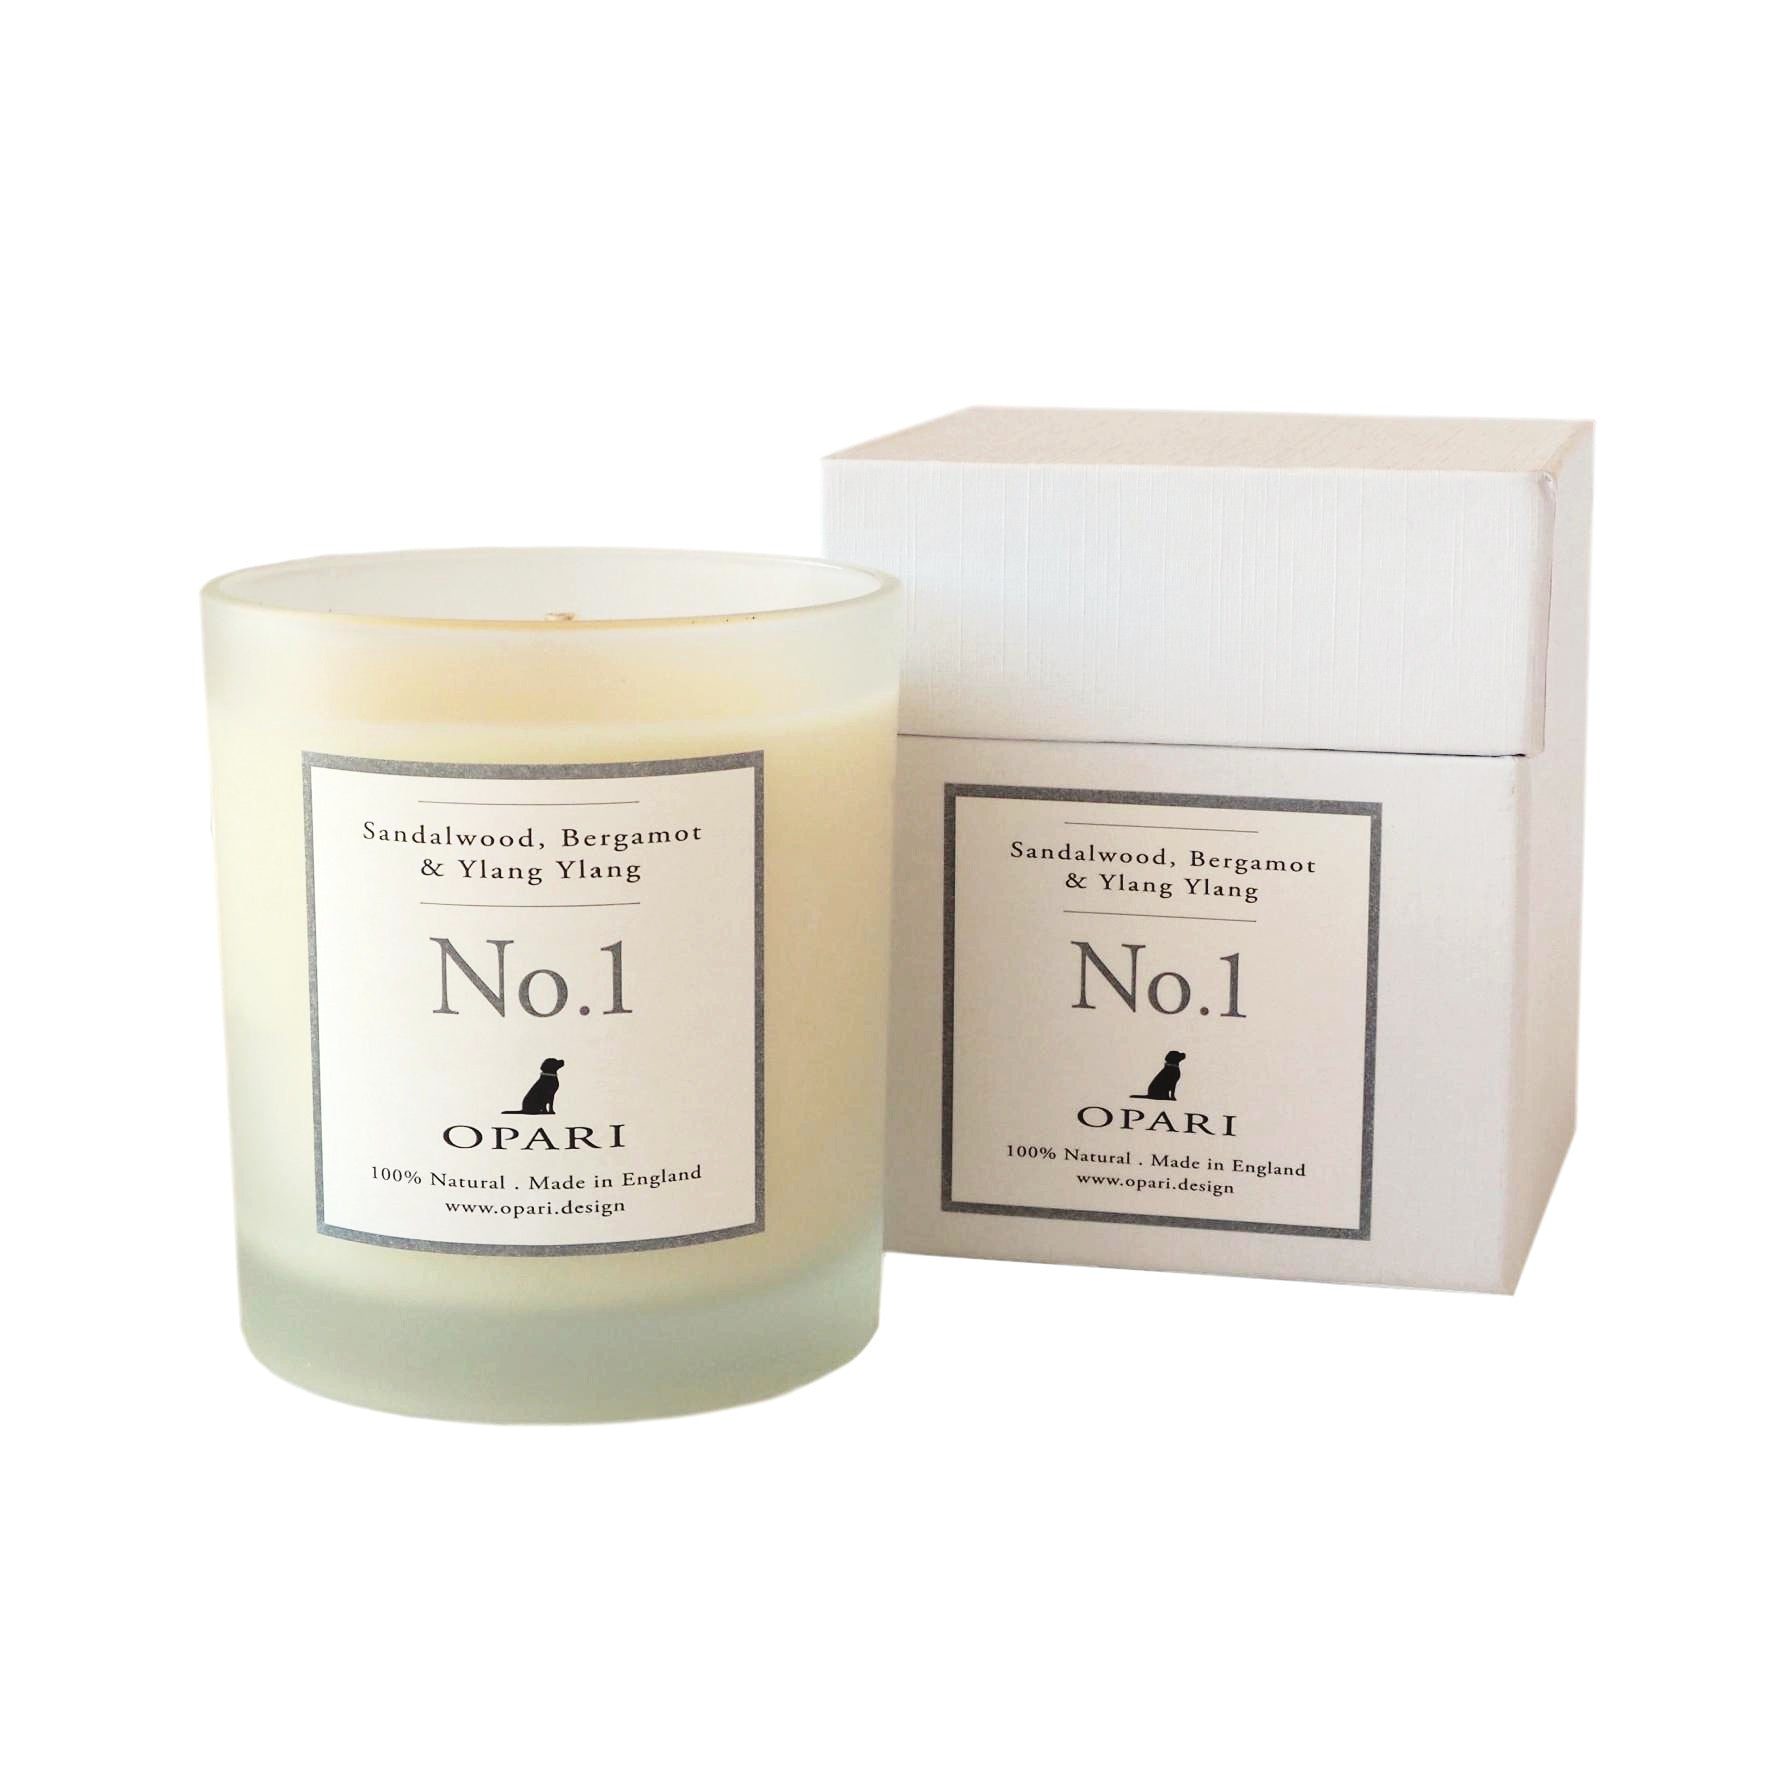 100% natural scented candle, Sandalwood Bergamot & Ylang Ylang by Opari